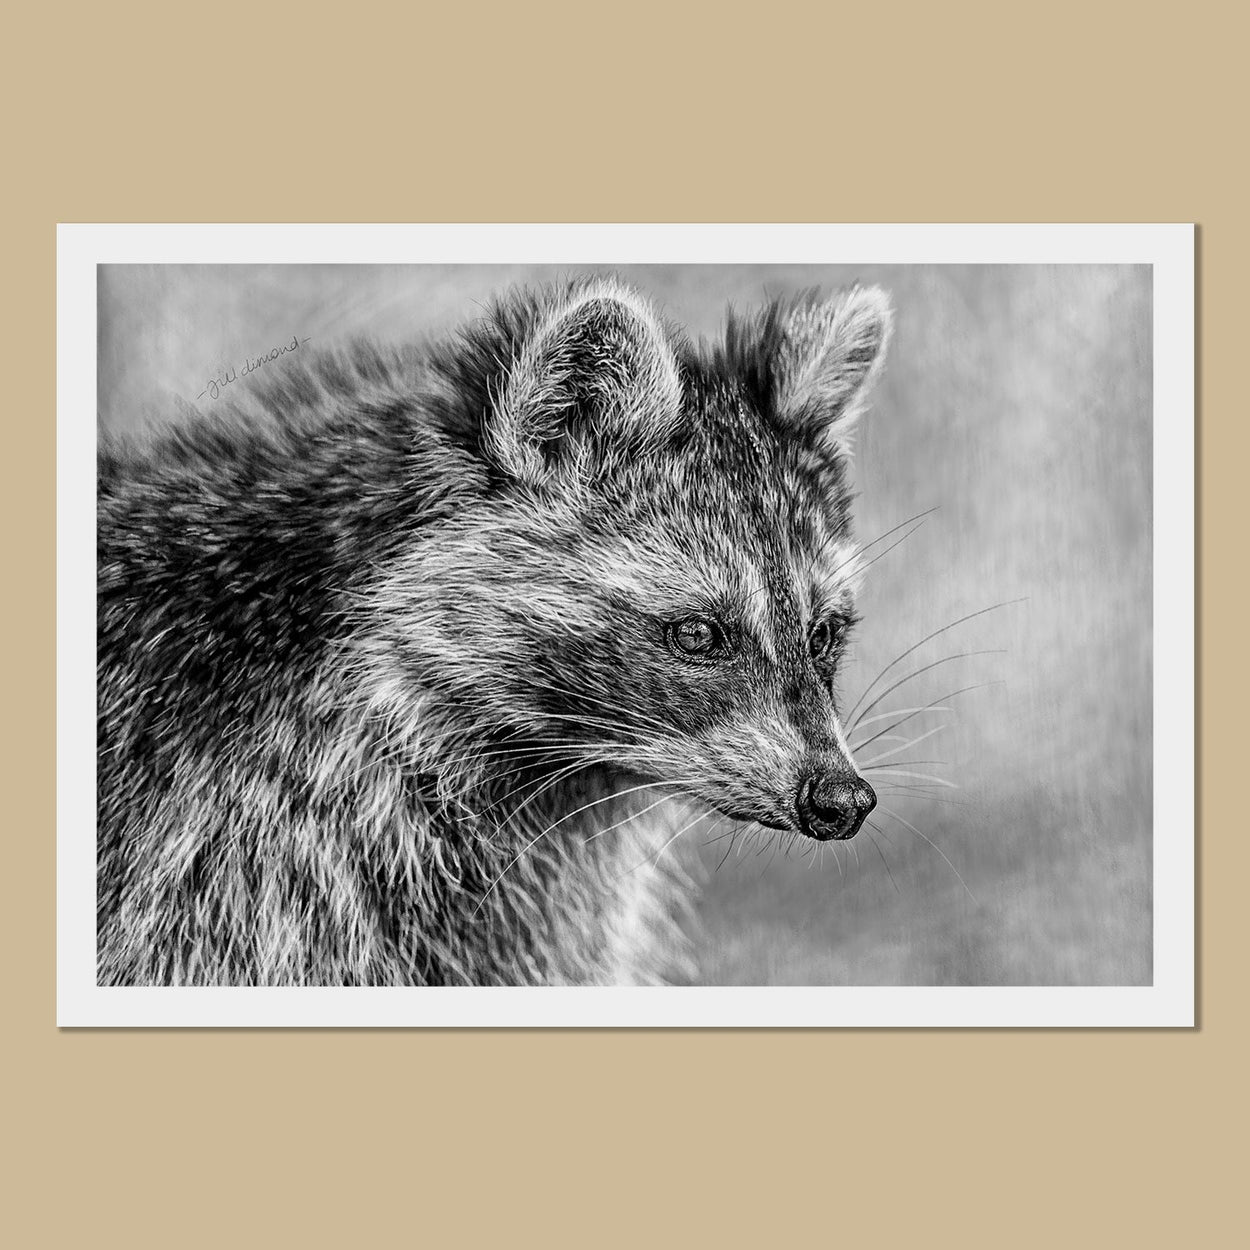 Raccoon Art Prints - The Thriving Wild